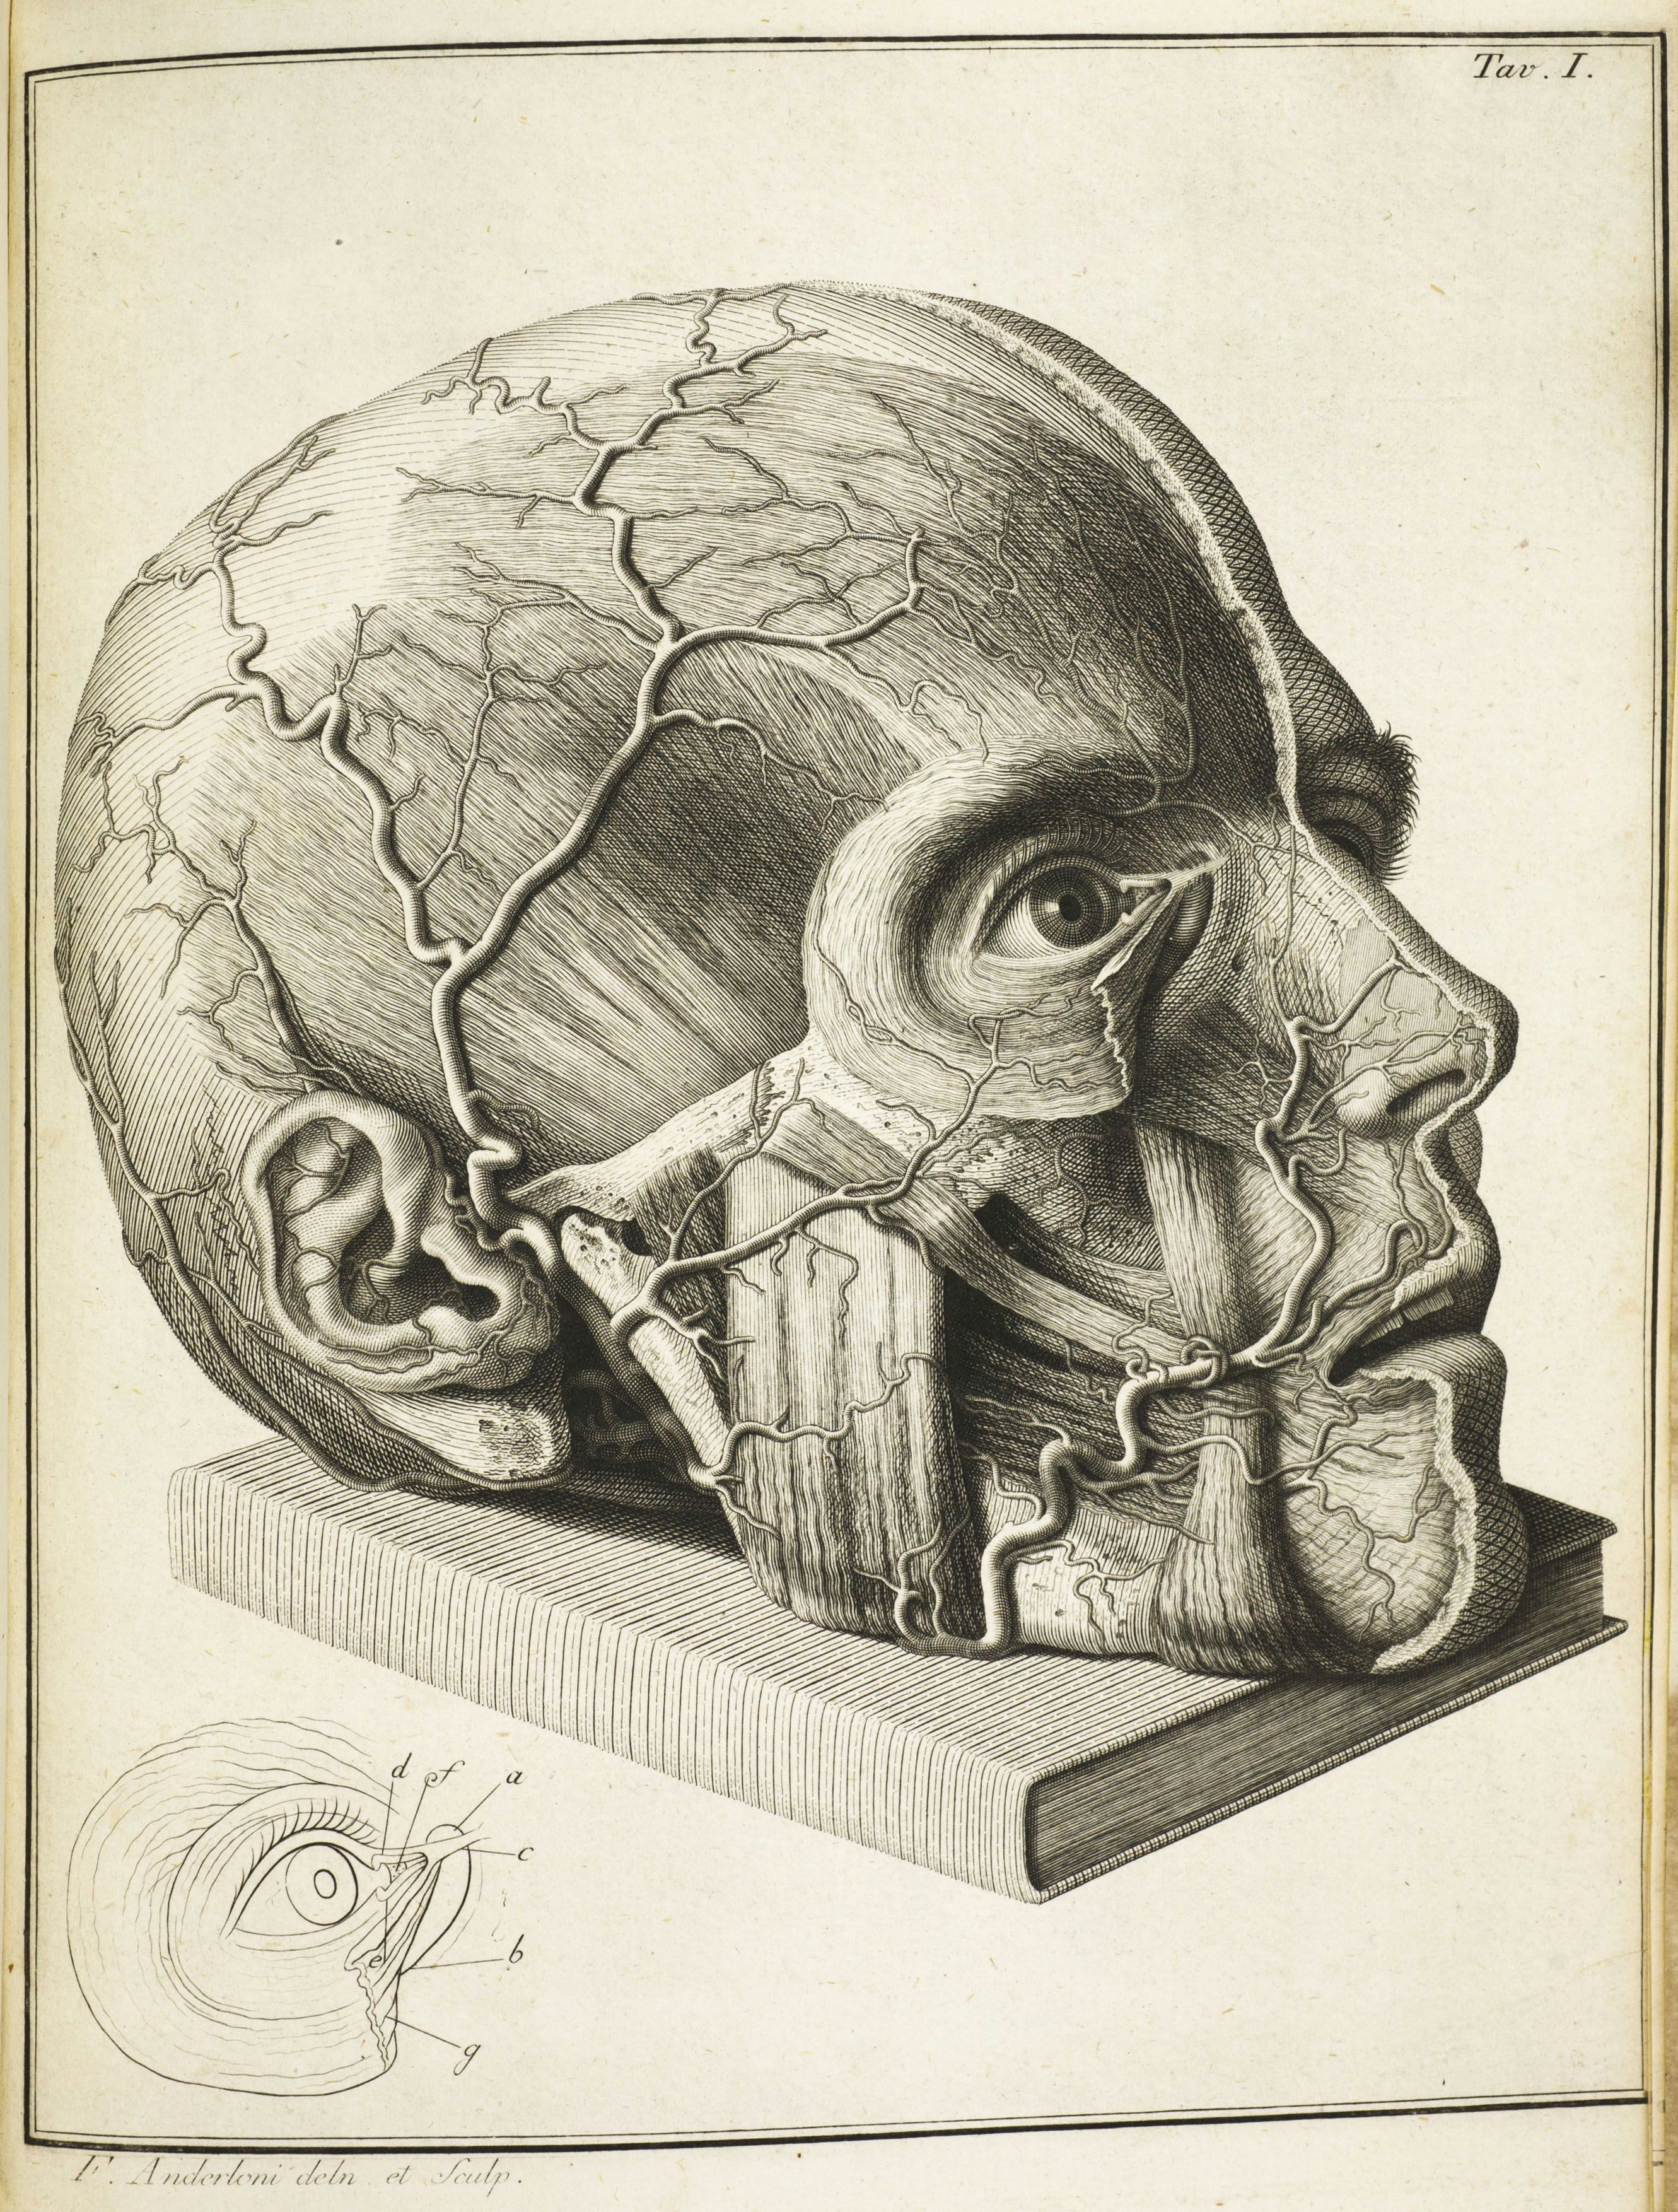 Skull Drawing Brain 16th Century Drawings Of Disease are as Fascinating as they are